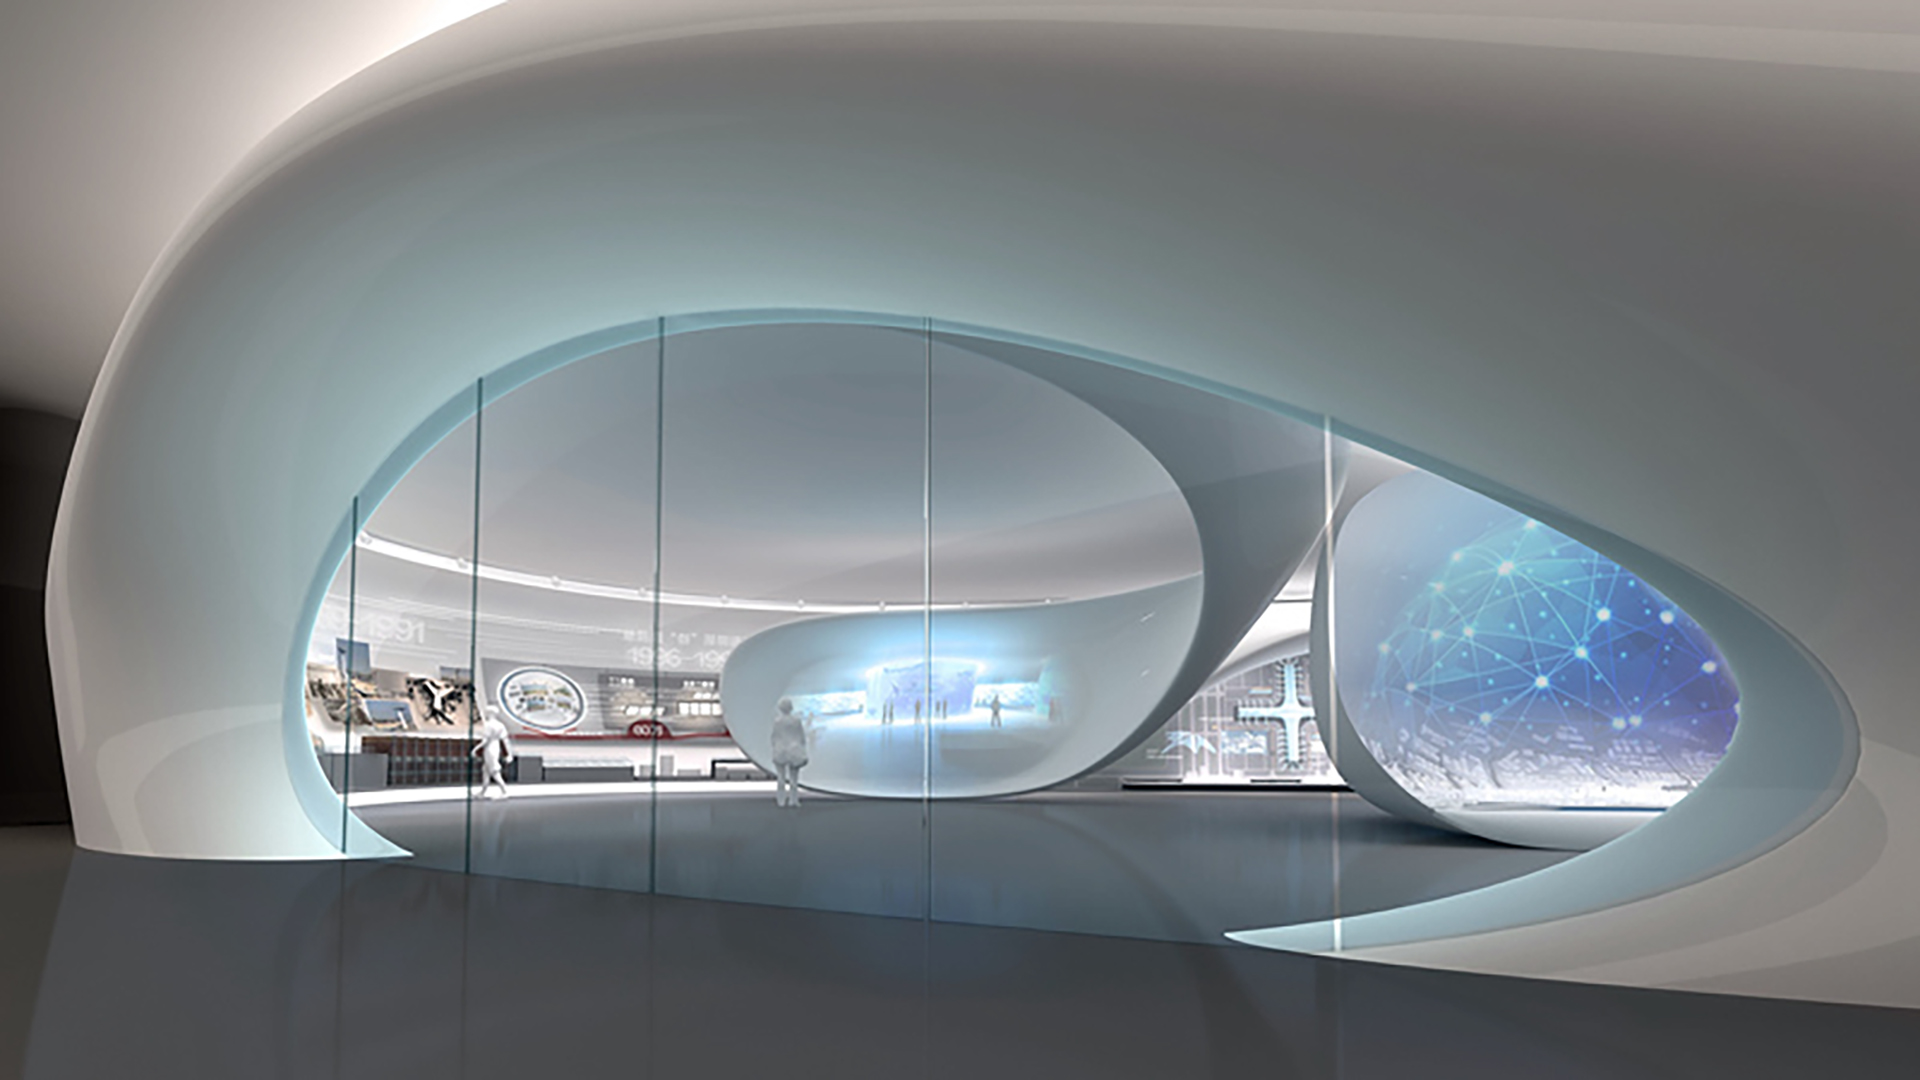 64-shenzhen-airport-enterprise-development-exhibition-hall